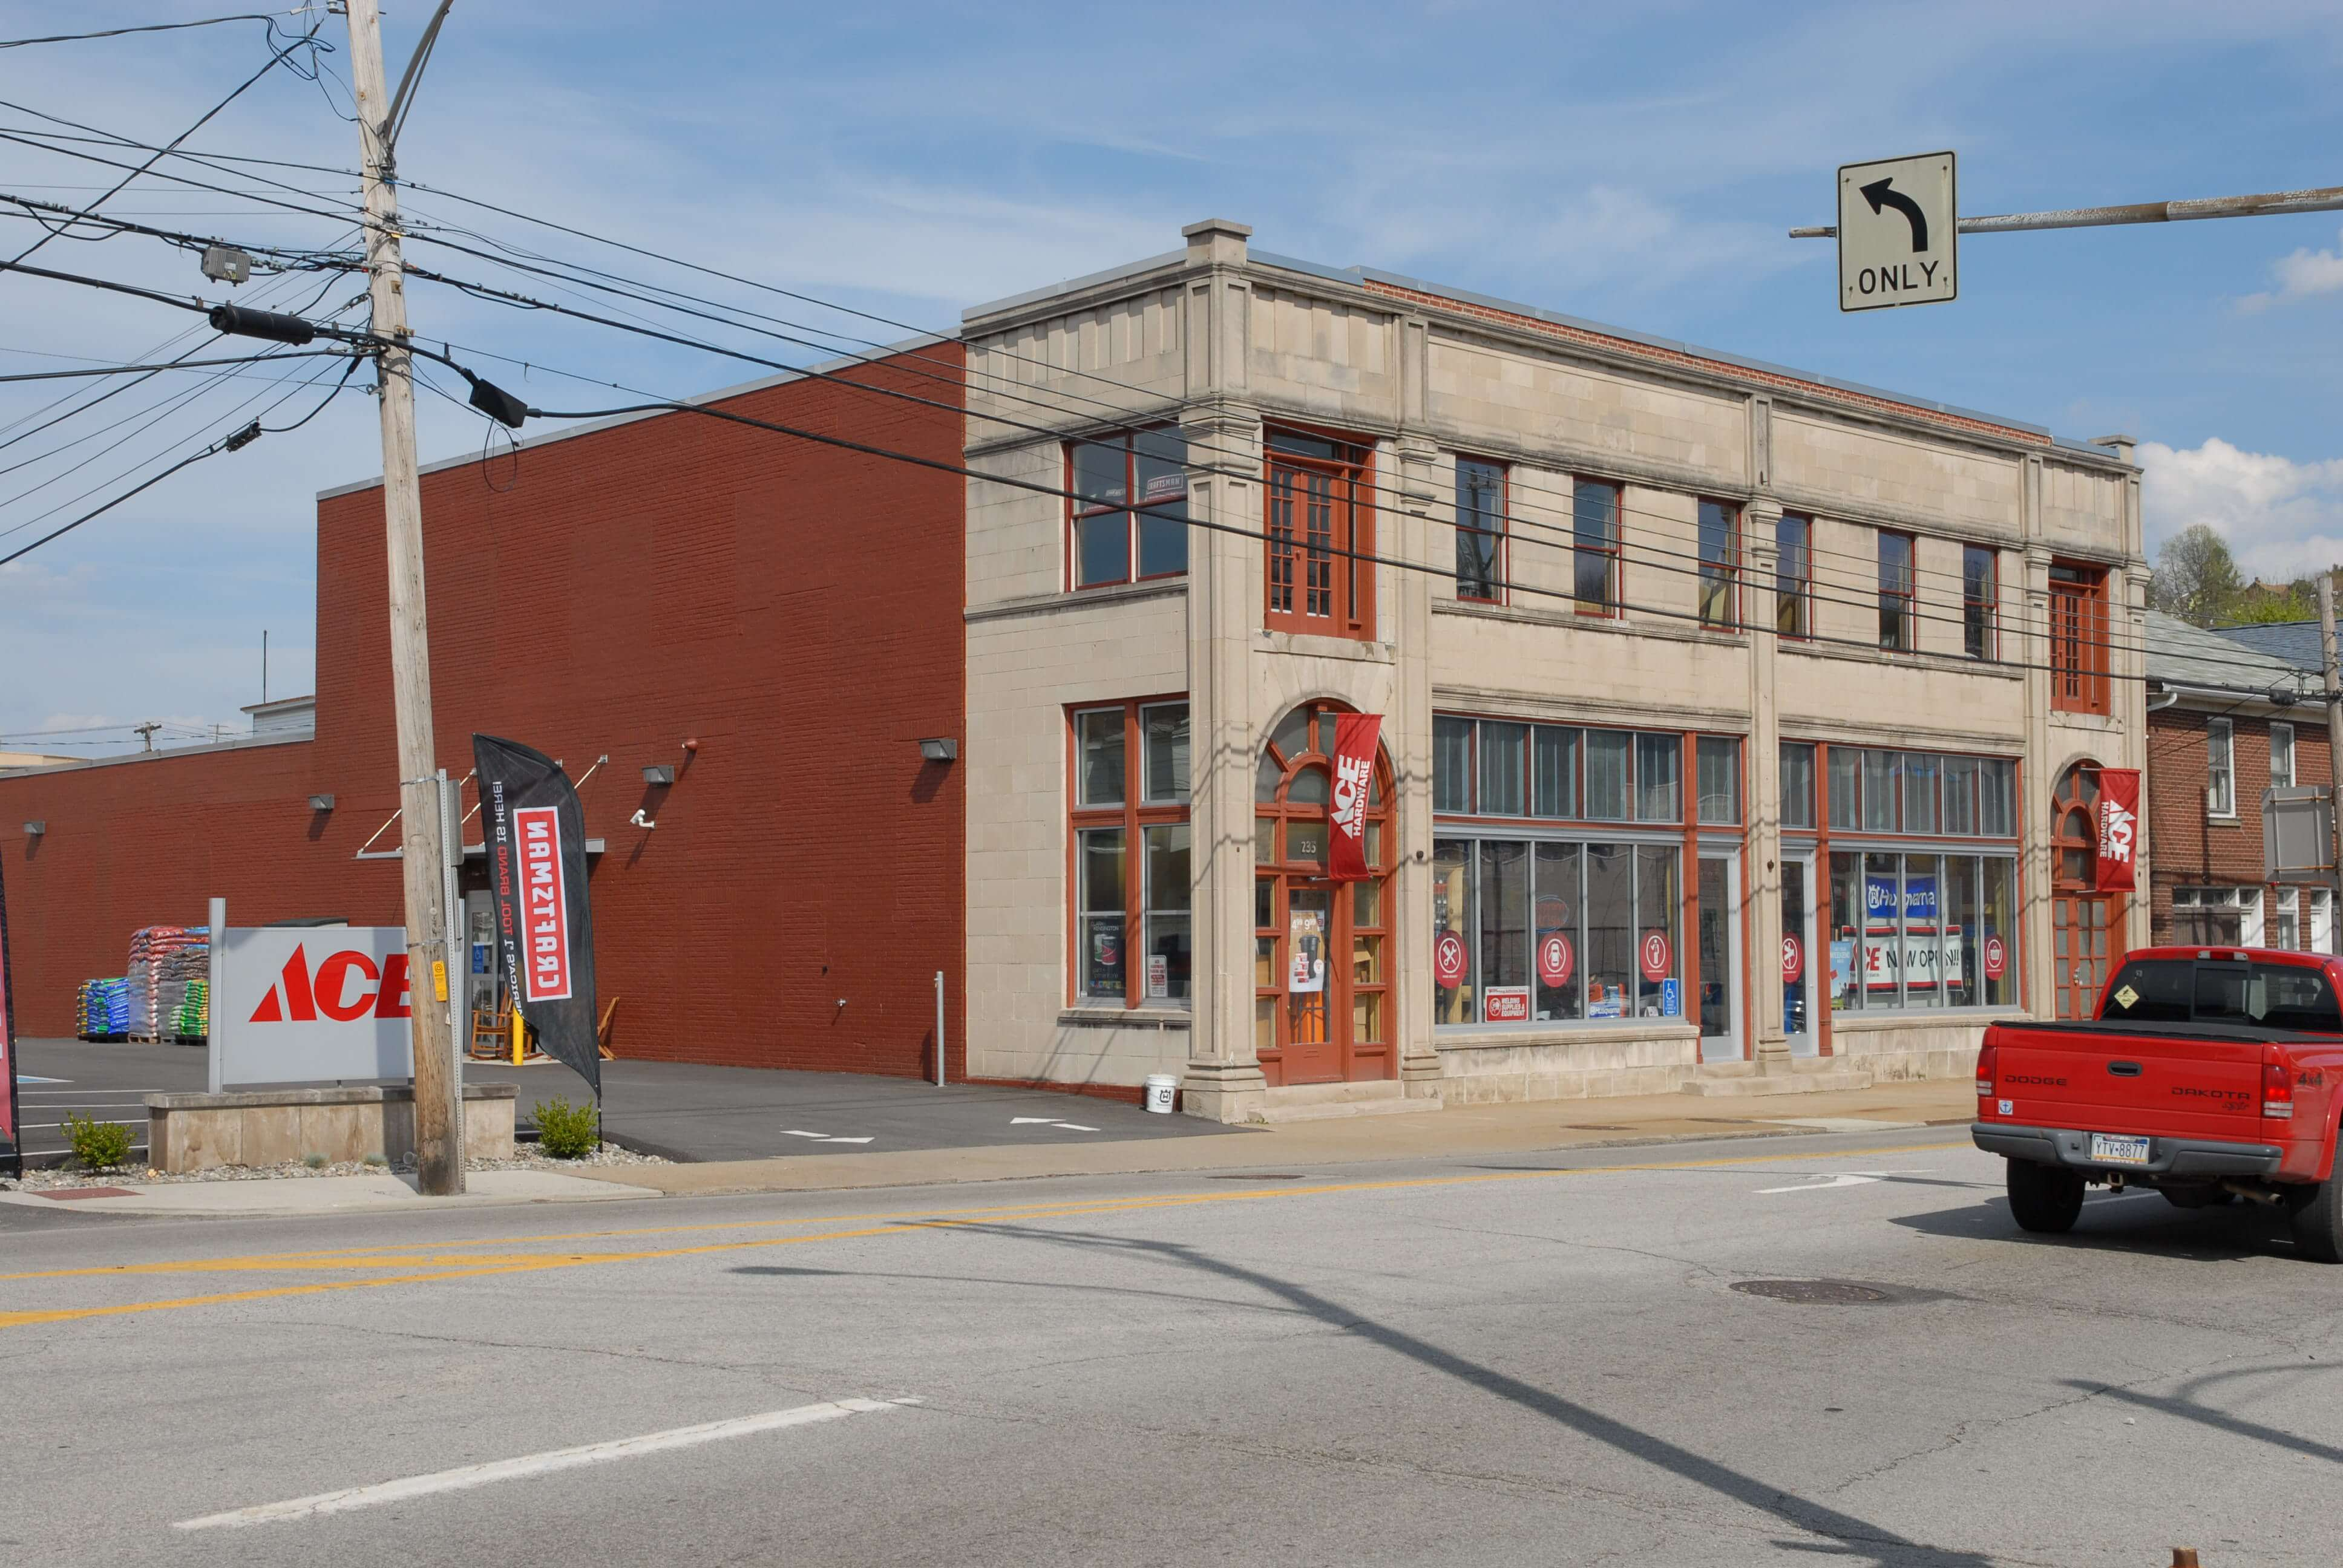 greensburg Ace Hardware building